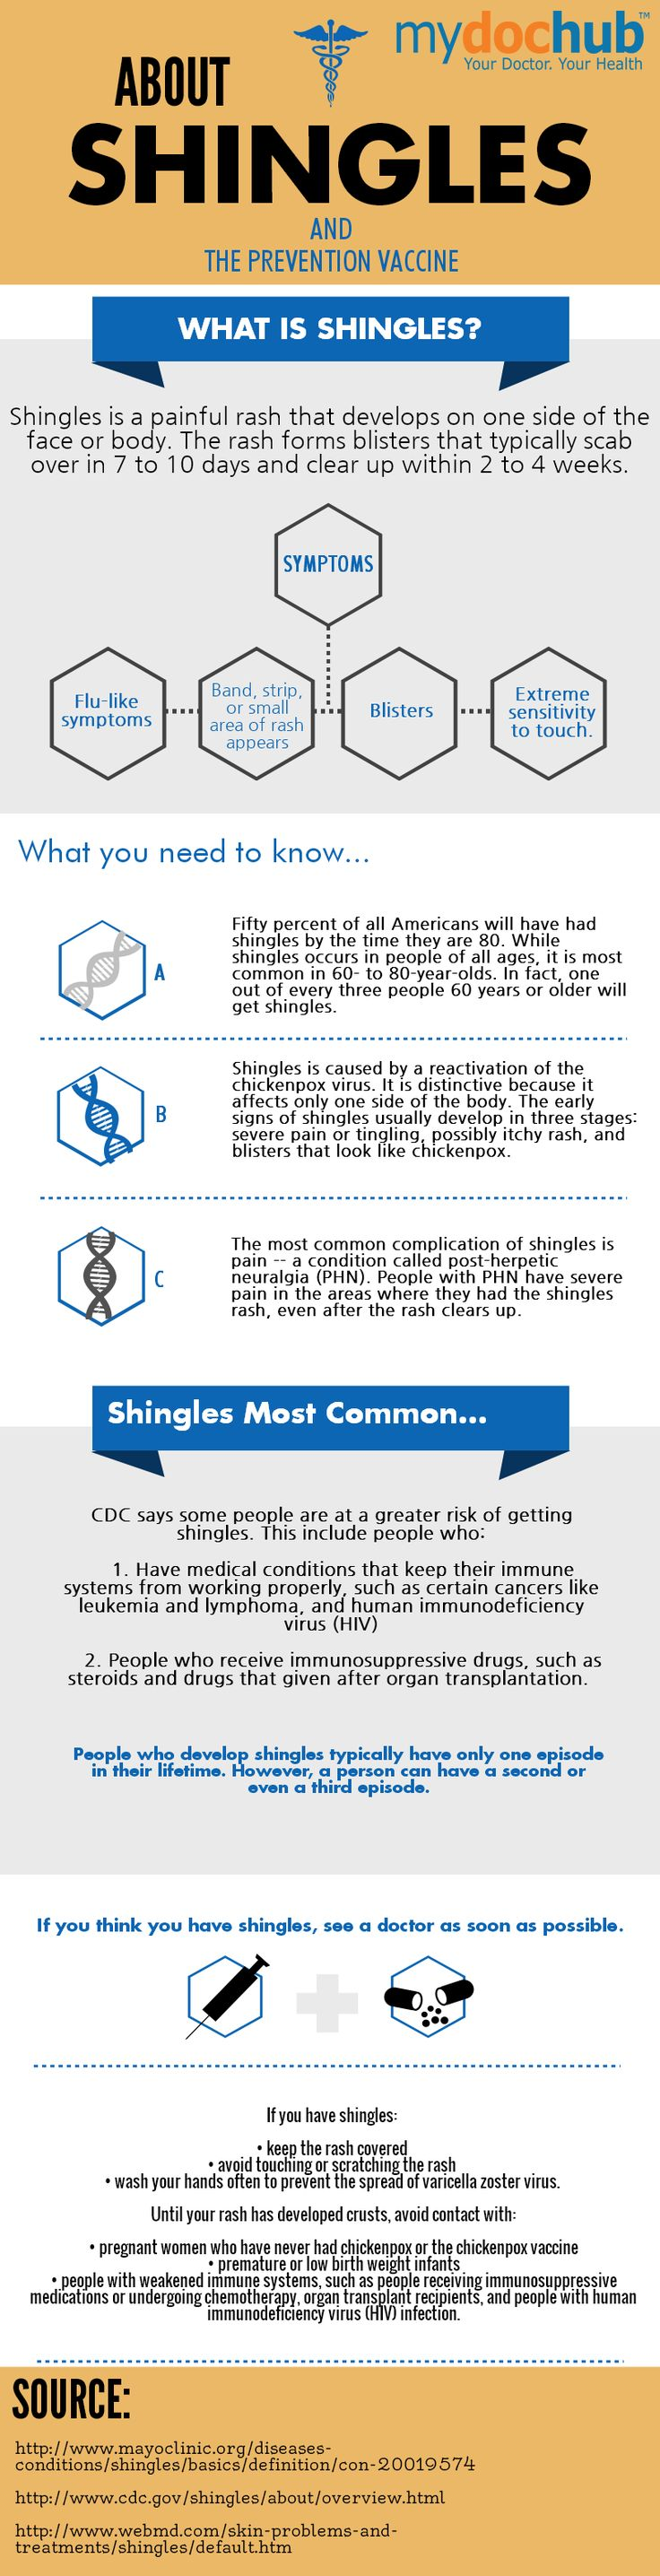 MyDocHub has put together a comprehensive infographic explaining the symptoms, as well as causes of shingles and risk factors and other pertinent facts about shingles. #infographic